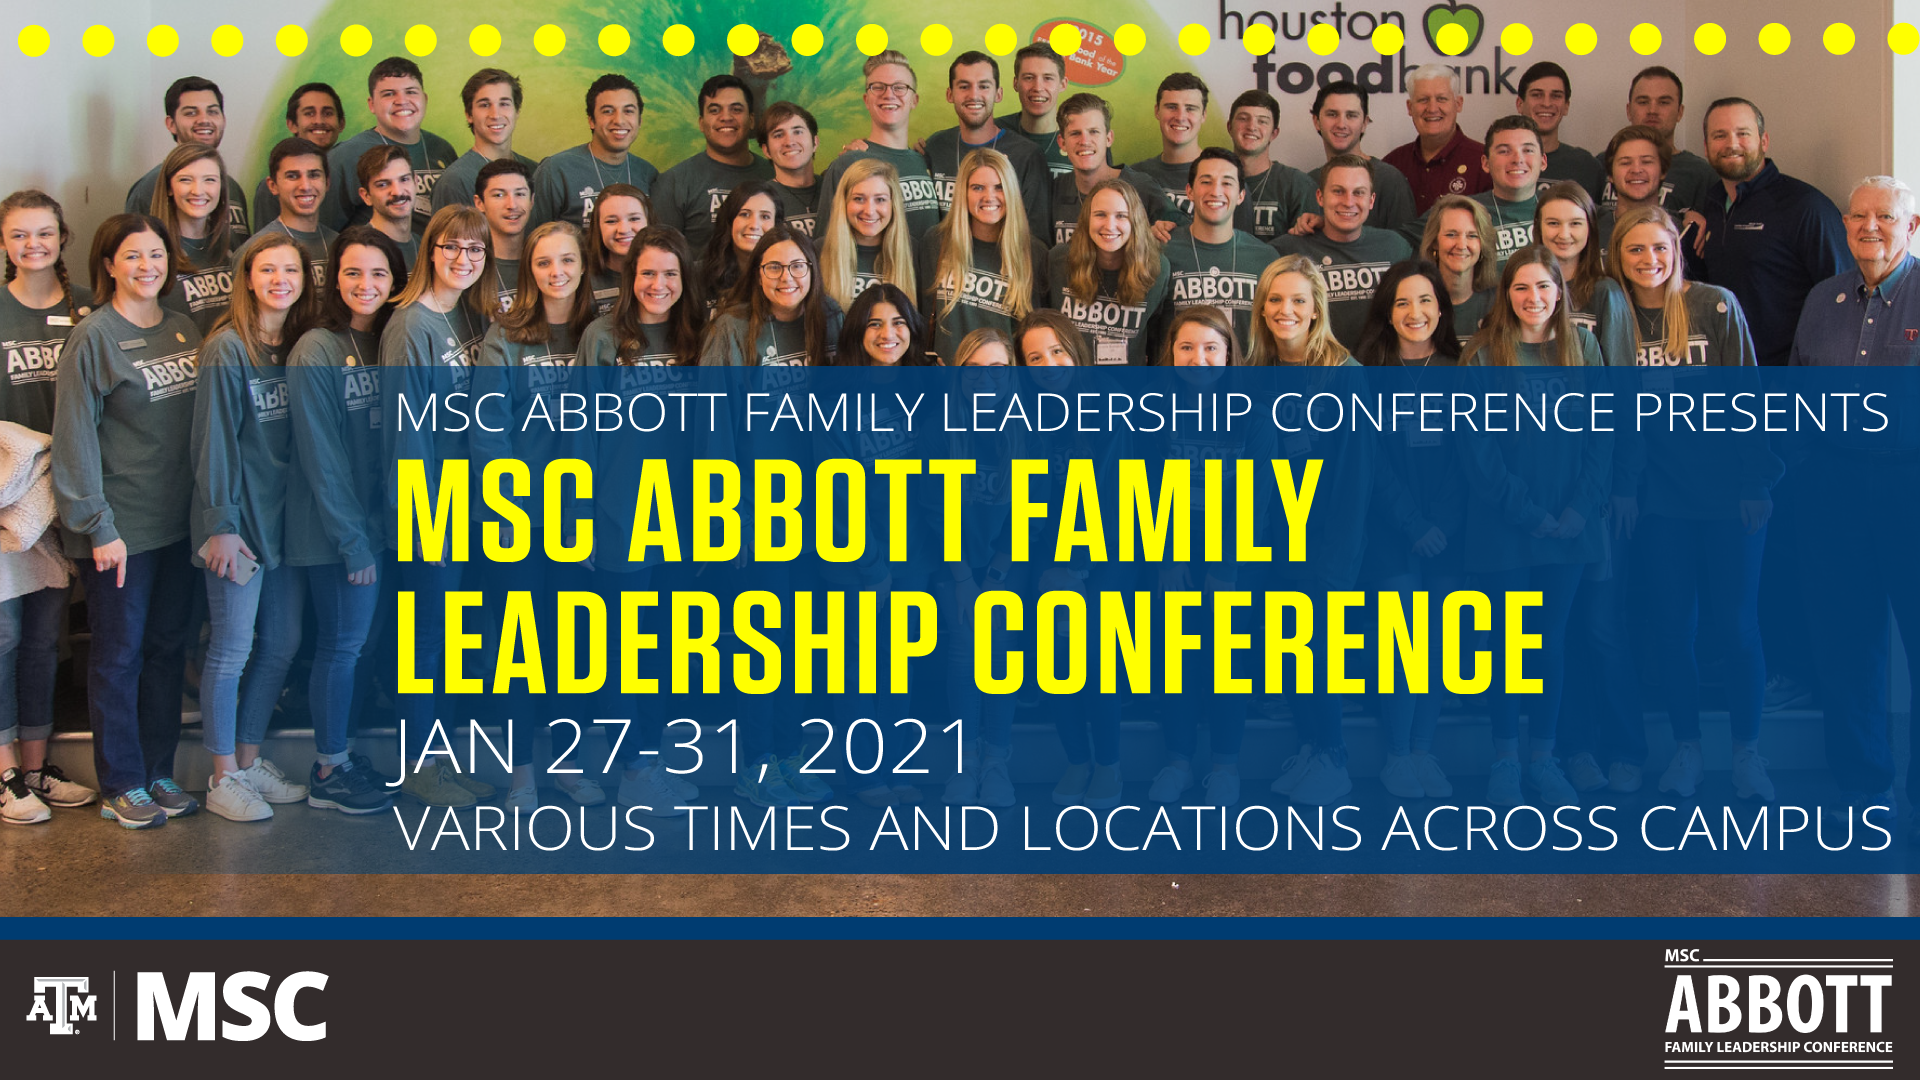 MSC Abbott Family Leadership Conference from January 27 to 31, 2021, in various times and locations across campus